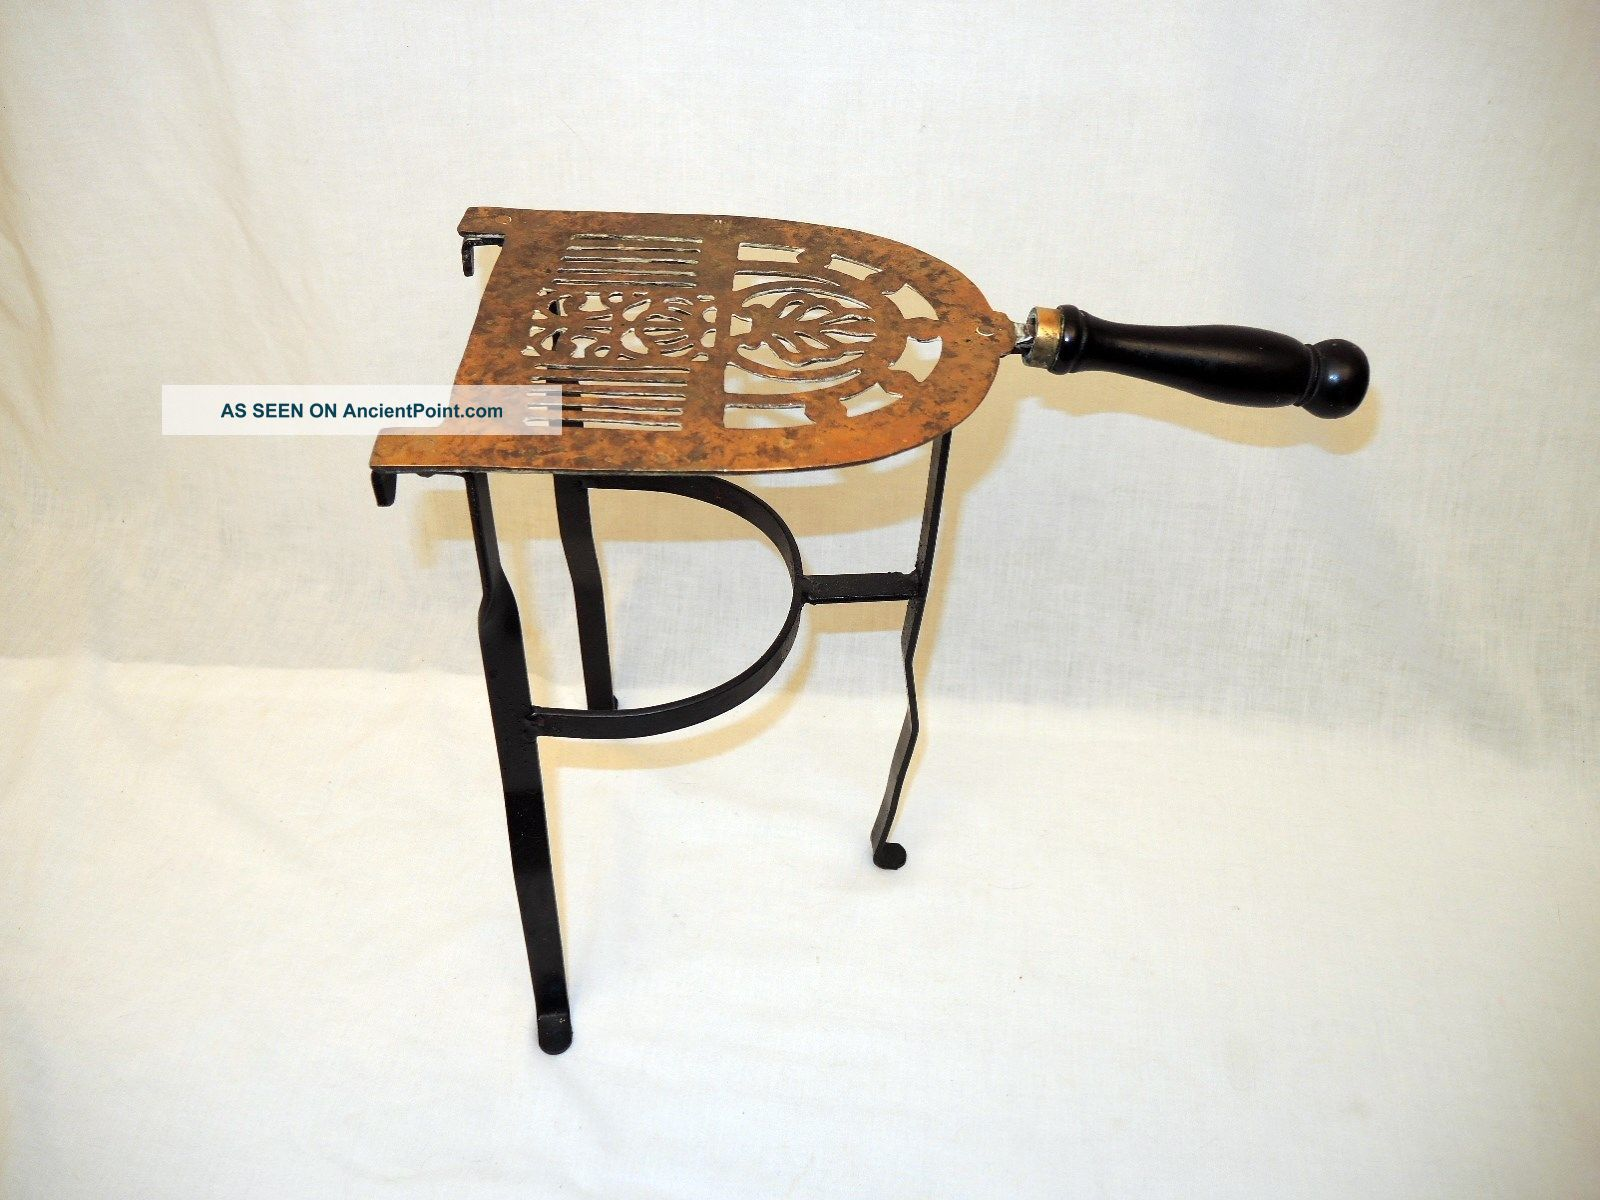 Antique Fireplace Hearth Brass Top Kettle - Pot Warming Stand - 3 Legs Hearth Ware photo